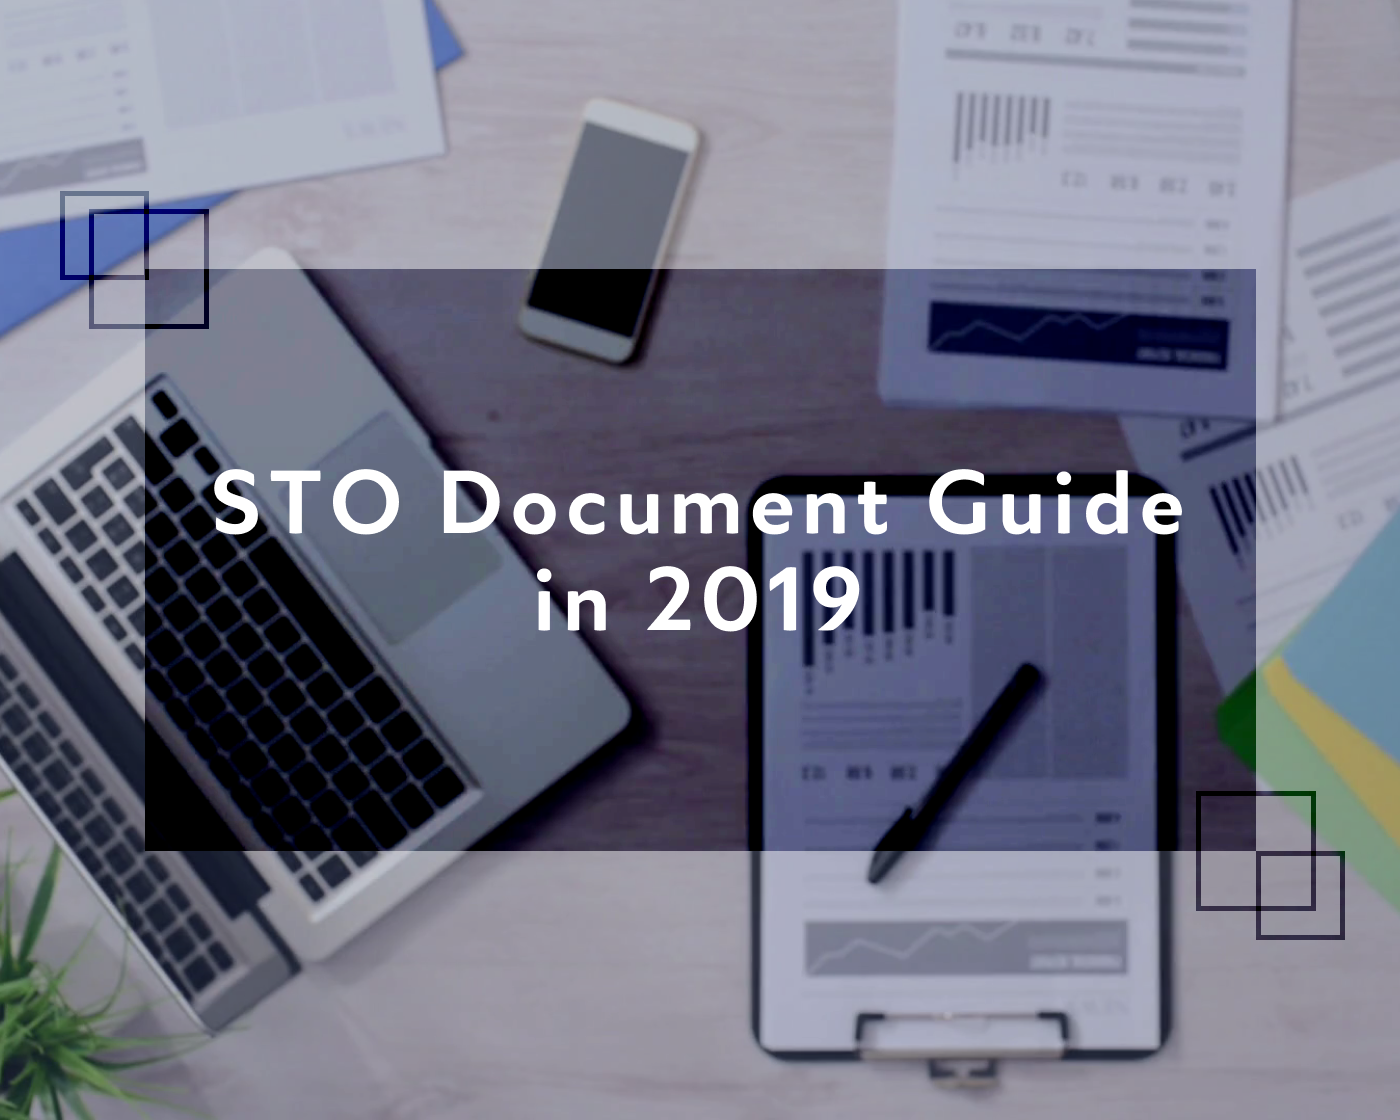 /document-guide-for-your-sto-in-2019-99d30d2b476b feature image